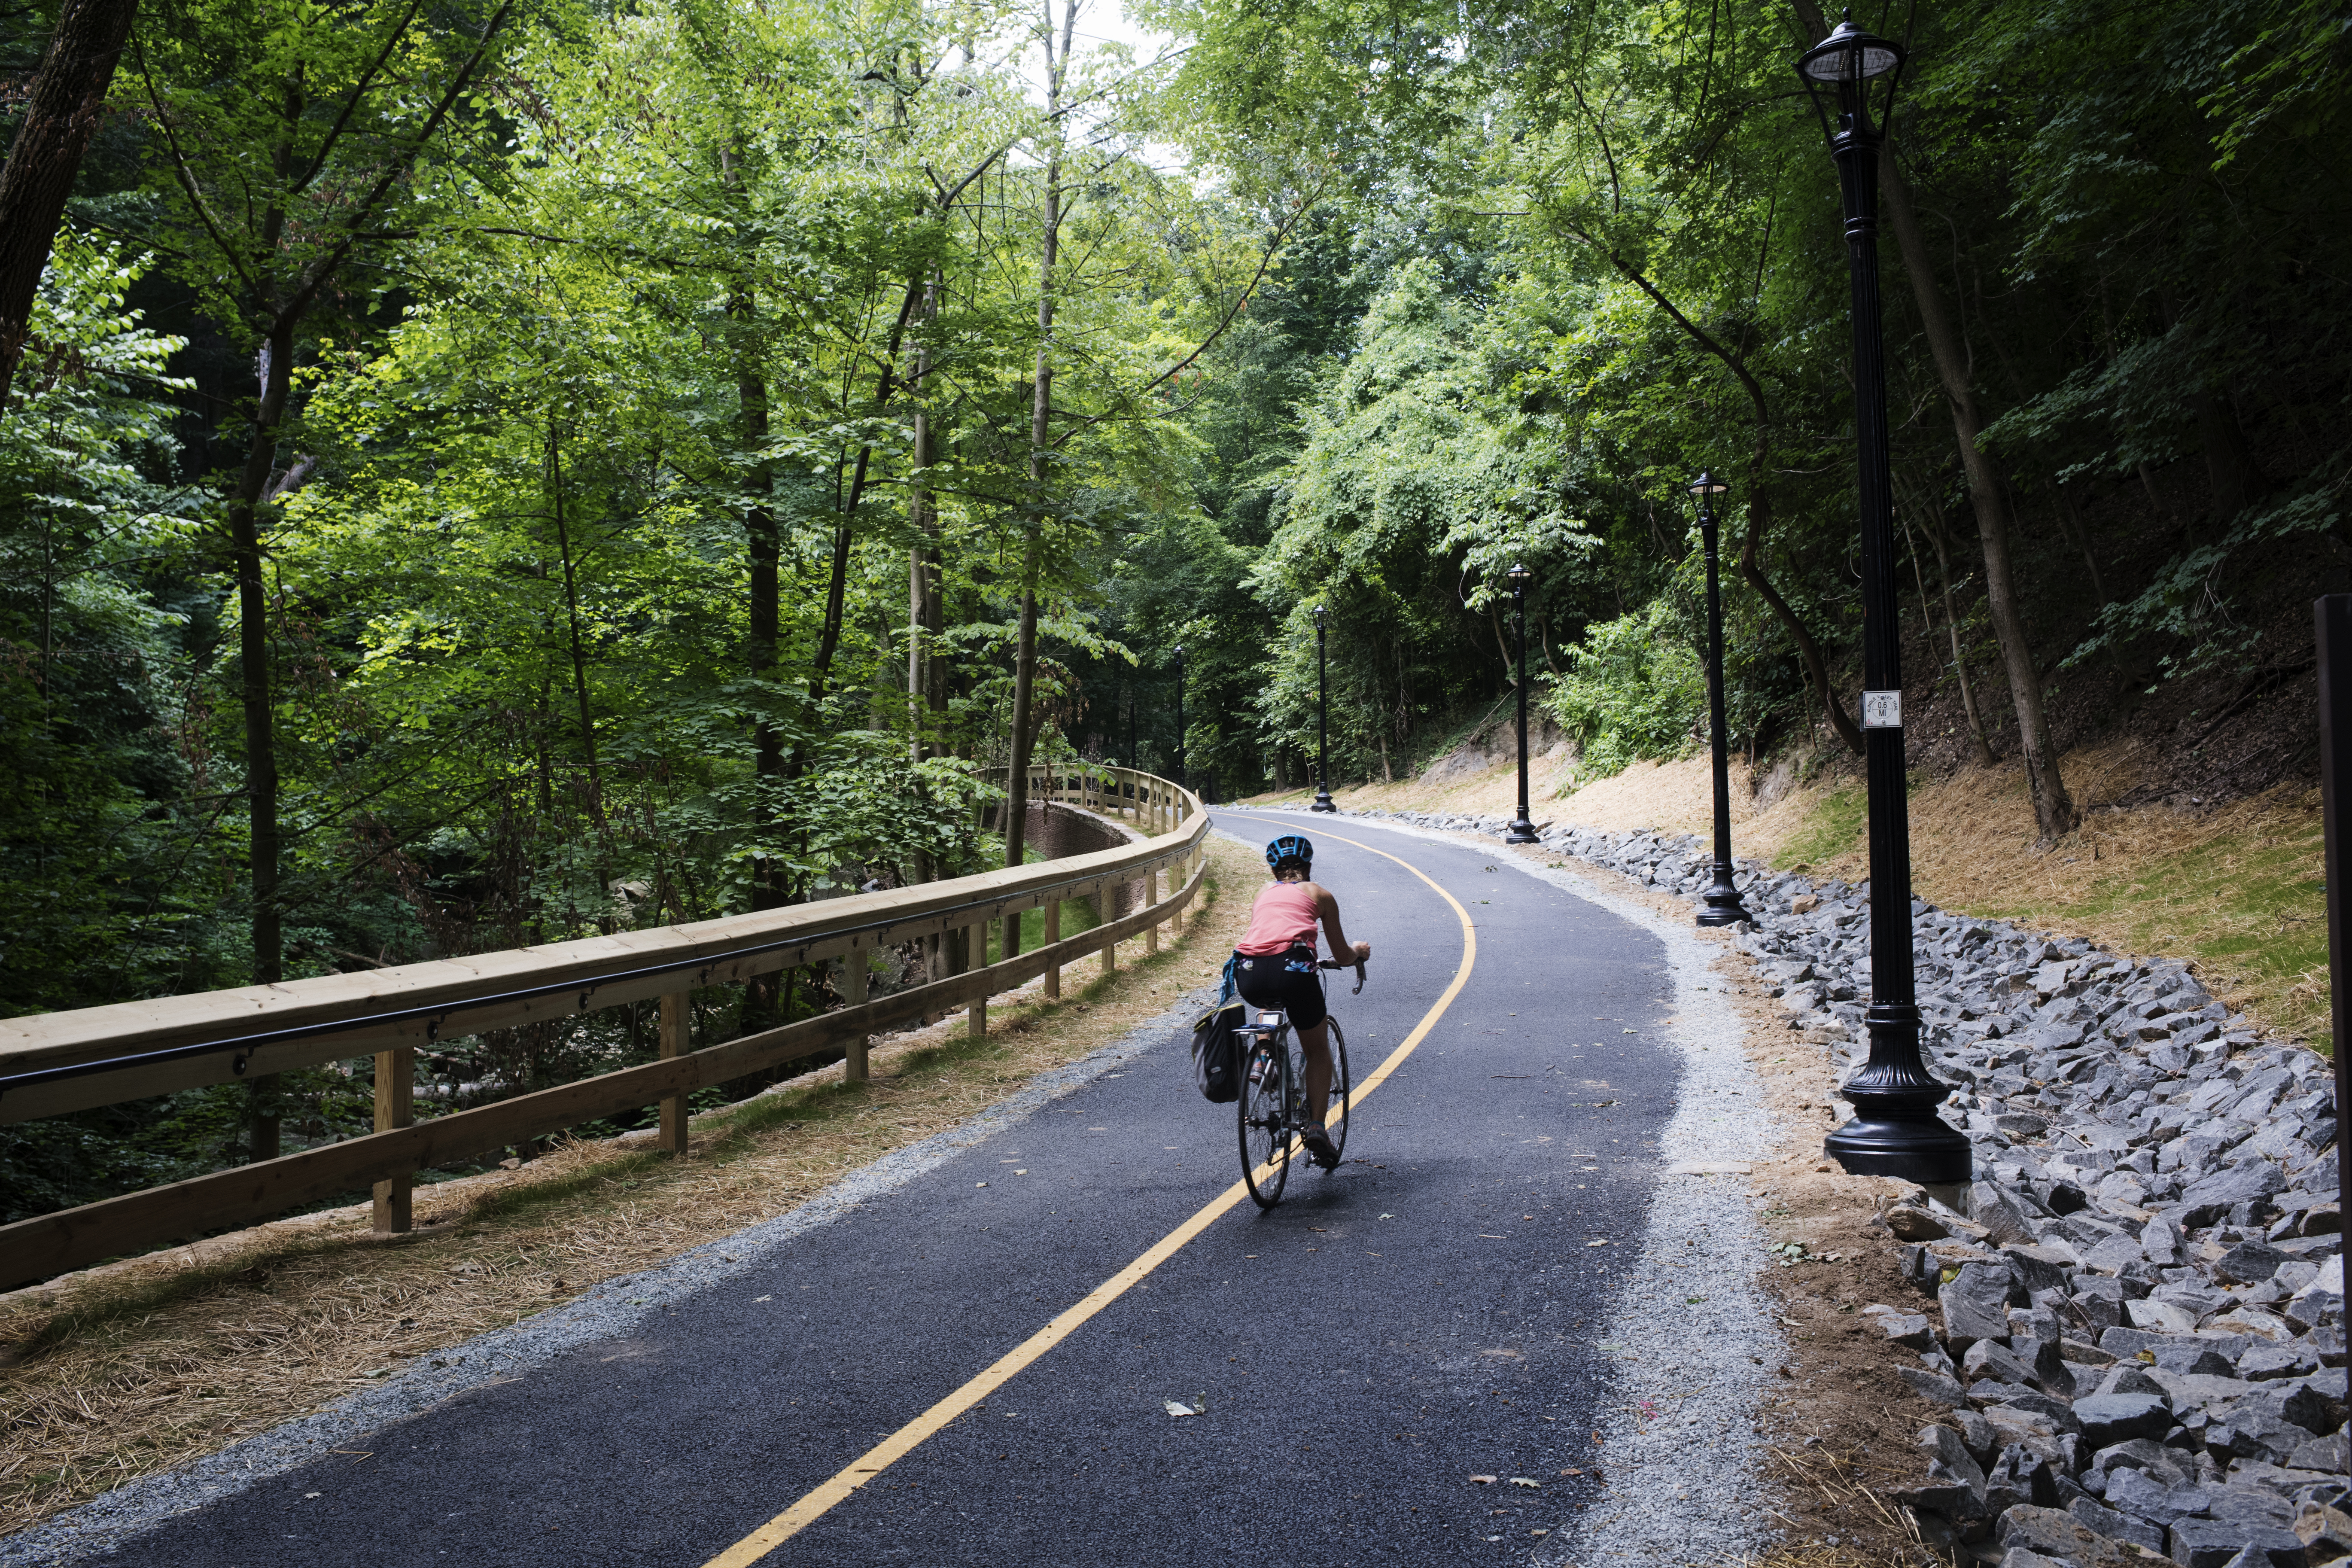 A cyclist uses a multiuse trail in the middle of a lush park. The trail is lined with streetlights.